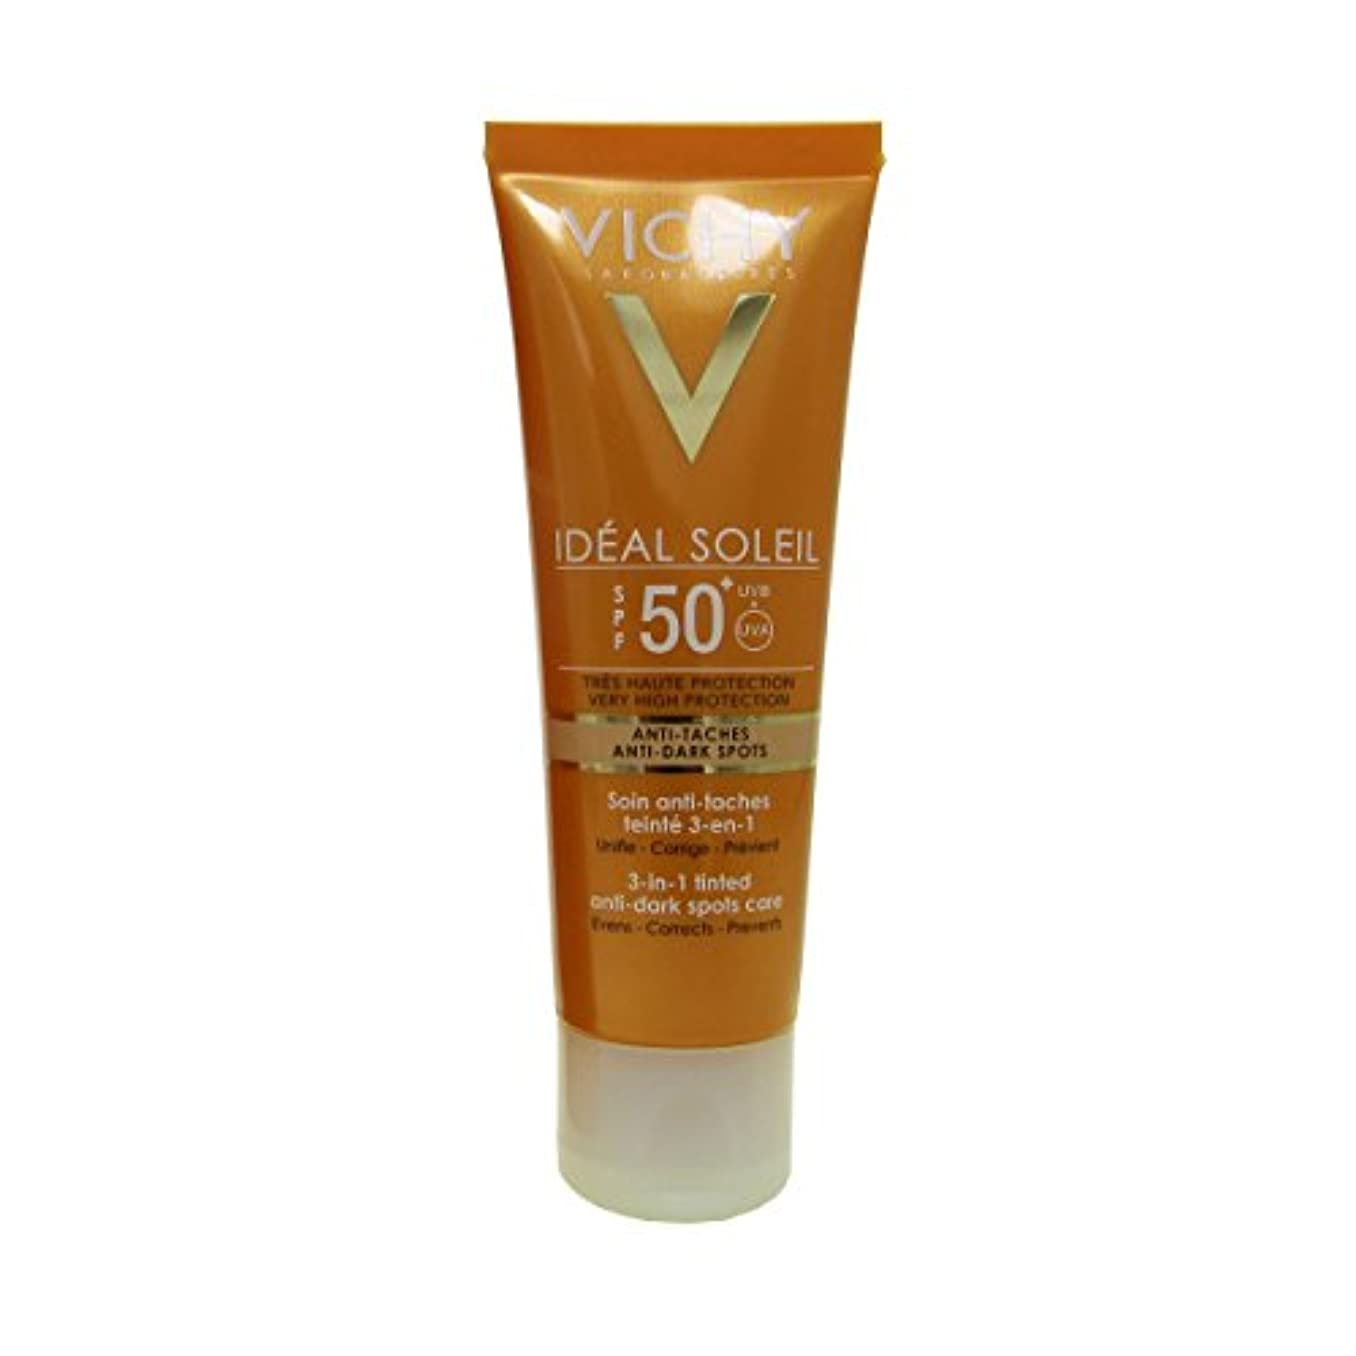 チラチラする紫のシャワーVichy Capital Soleil Ideal Soleil 3-in-1 Tinted Anti-dark Spots Care Spf50 50ml [並行輸入品]